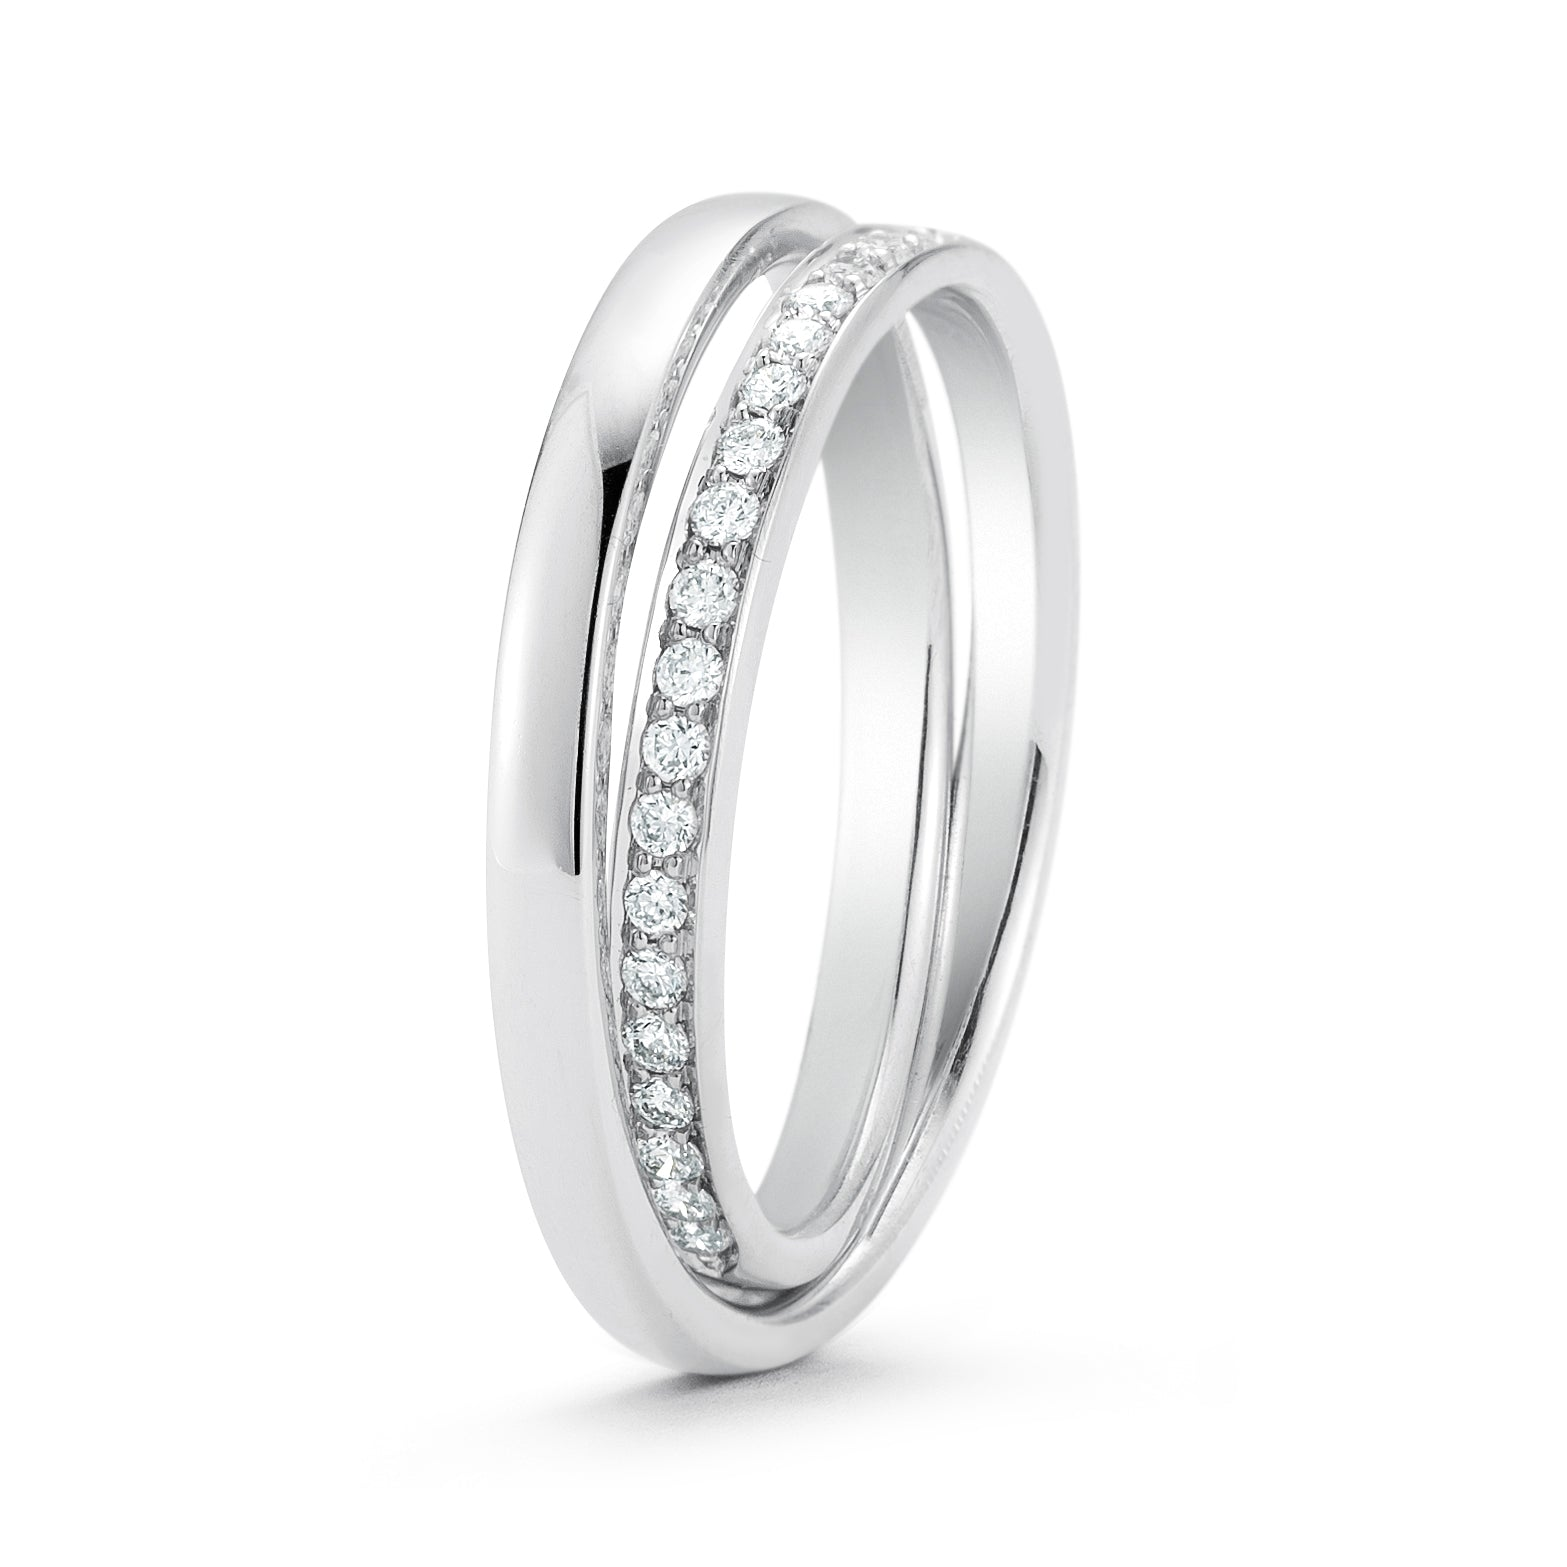 Buy the White Gold and Diamond Wedding Band at our Online Store